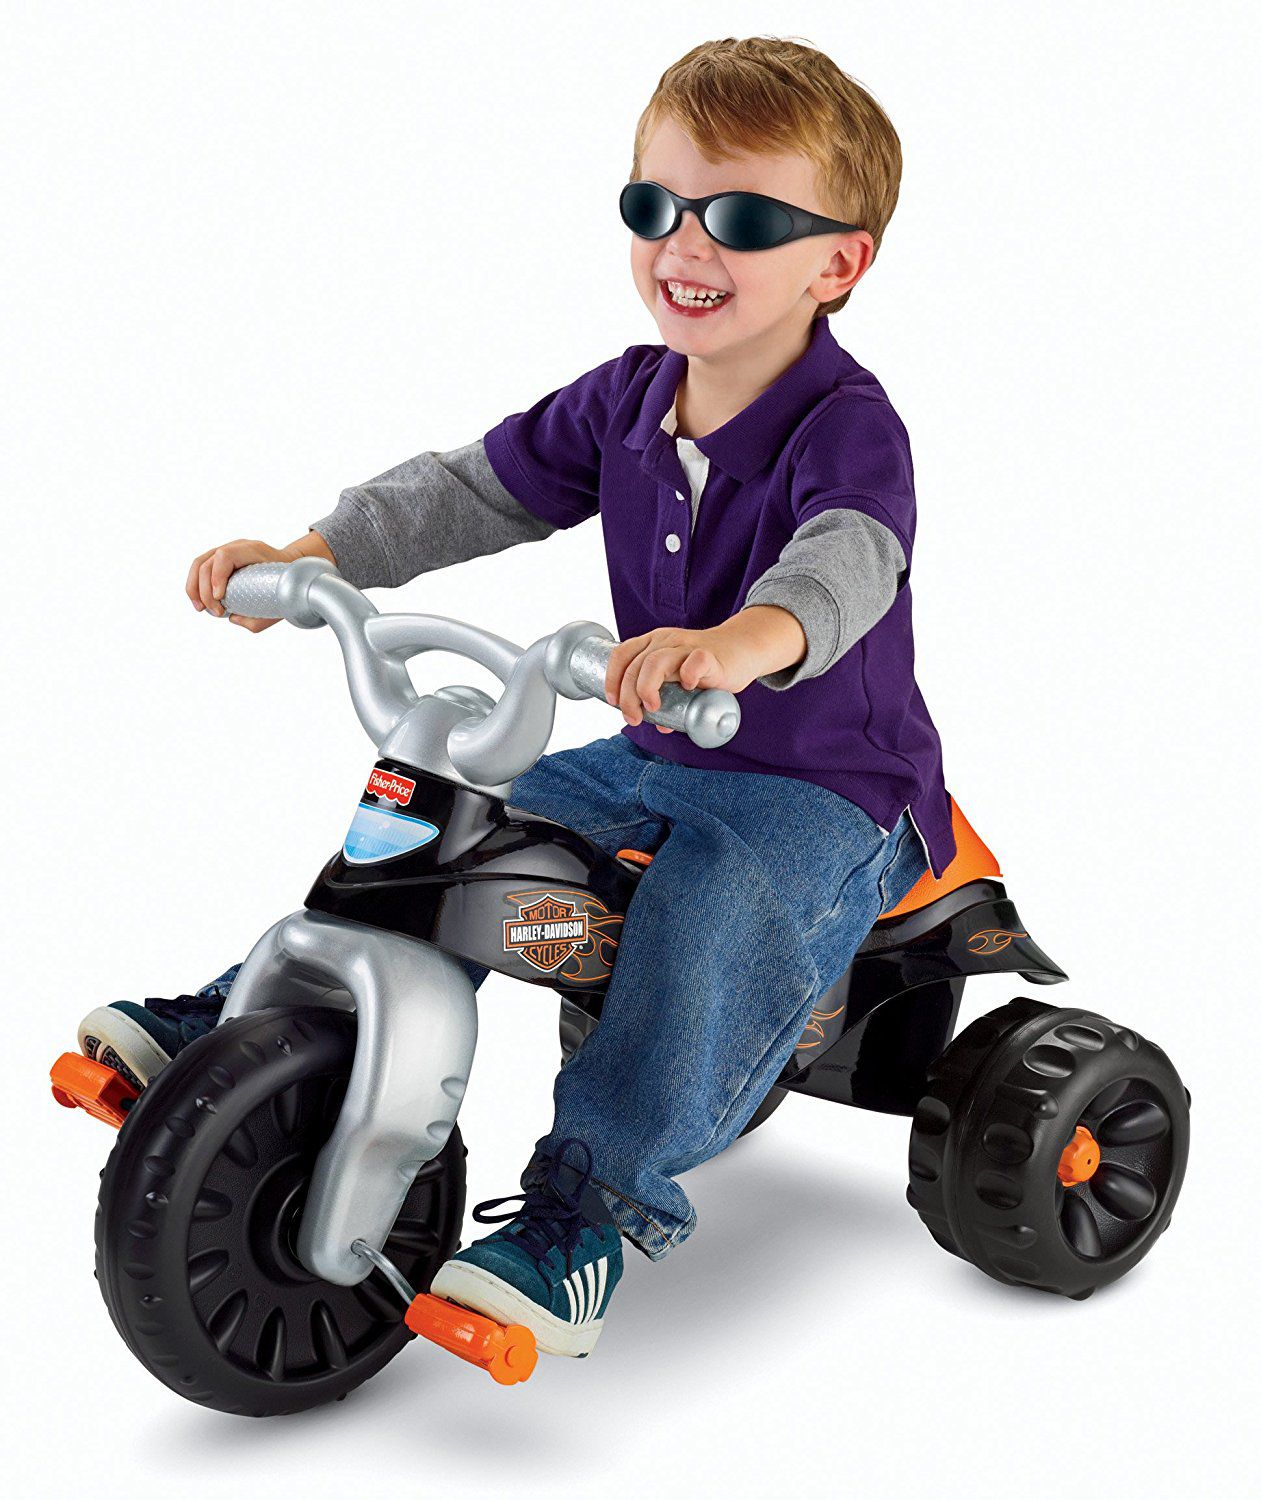 Fun Toys For Big Boys : The best toys to buy for year old boys in